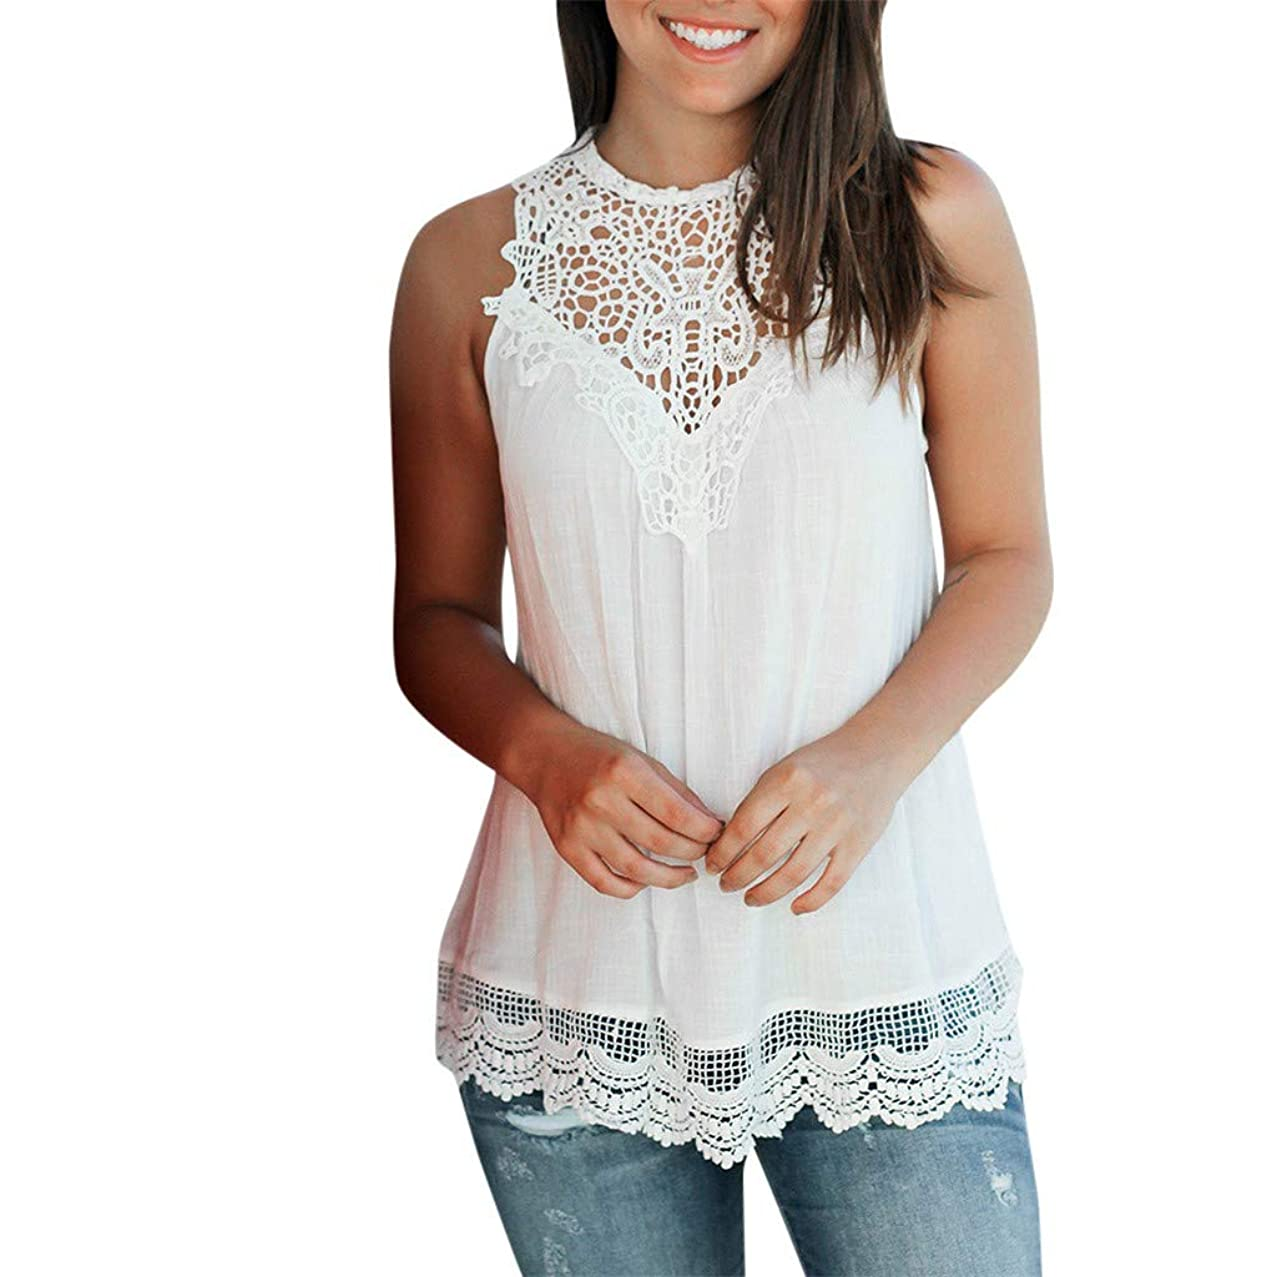 Sunhusing Women's Solid Color Pleated Lace Patchwork Vest Sleeveless Ruffled Crochet Tank Top Blouse